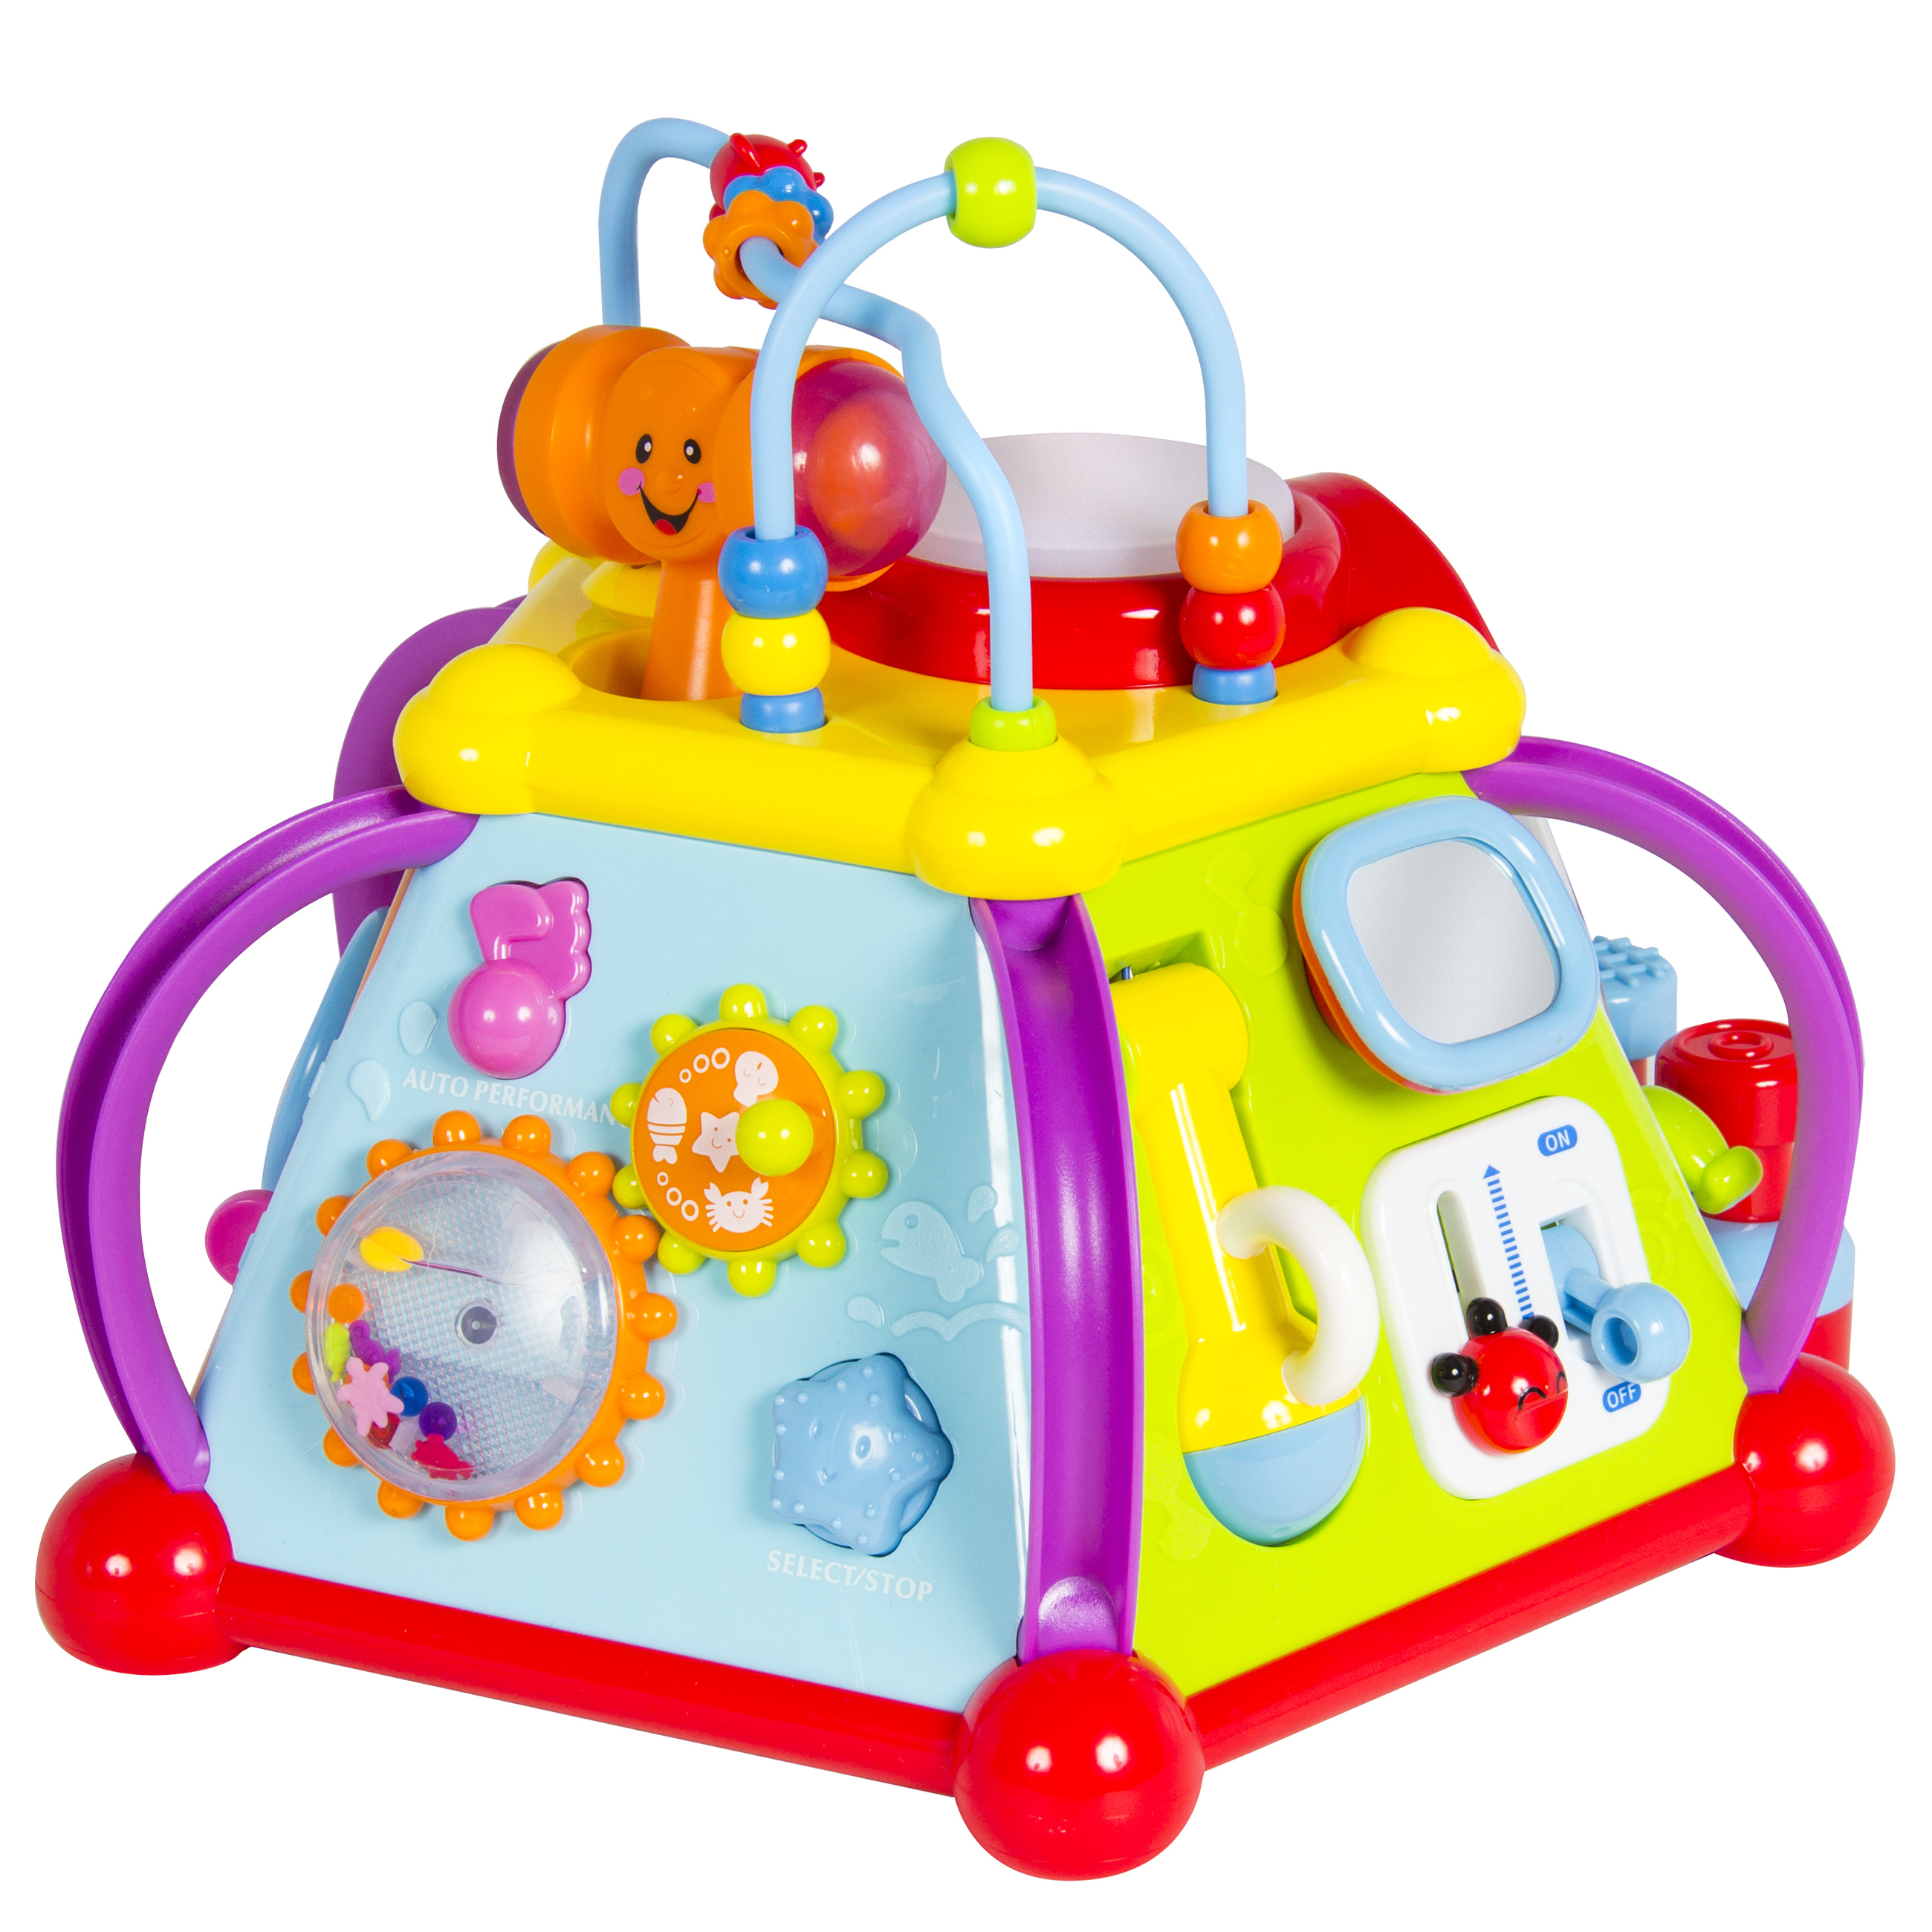 Baby Musical Toys Baby Toy Images Clipart Best